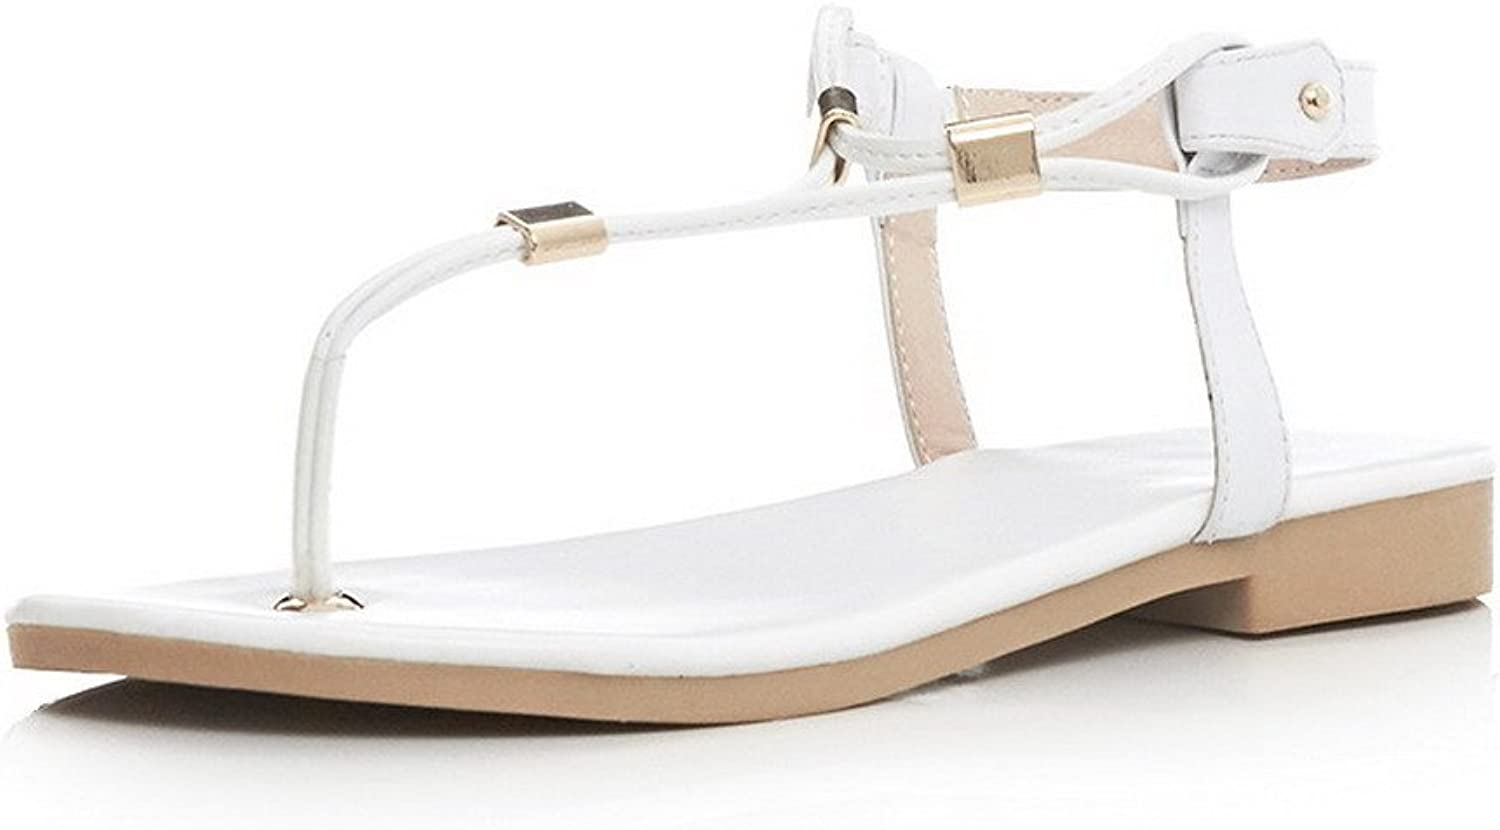 AmoonyFashion Womens Buckle Split Toe Low Heels Solid Sandals